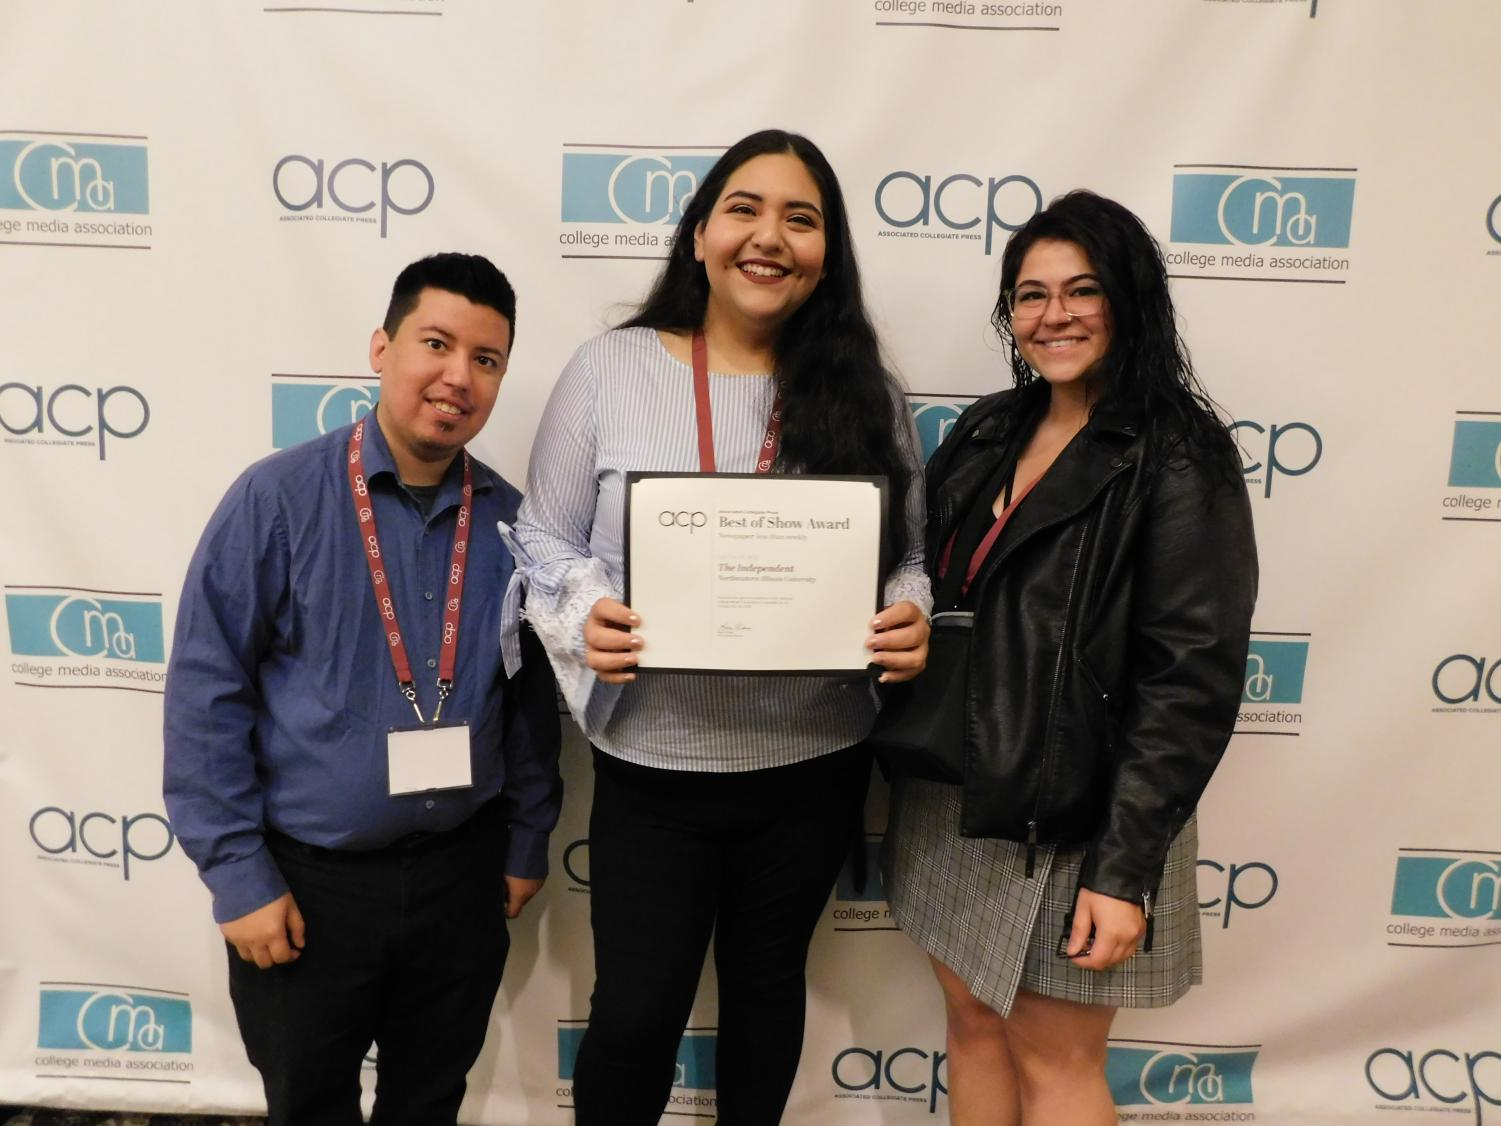 Editors Robert Kukla, Amaris E. Rodriguez and Nicole F. Anderson pose with the Independent's